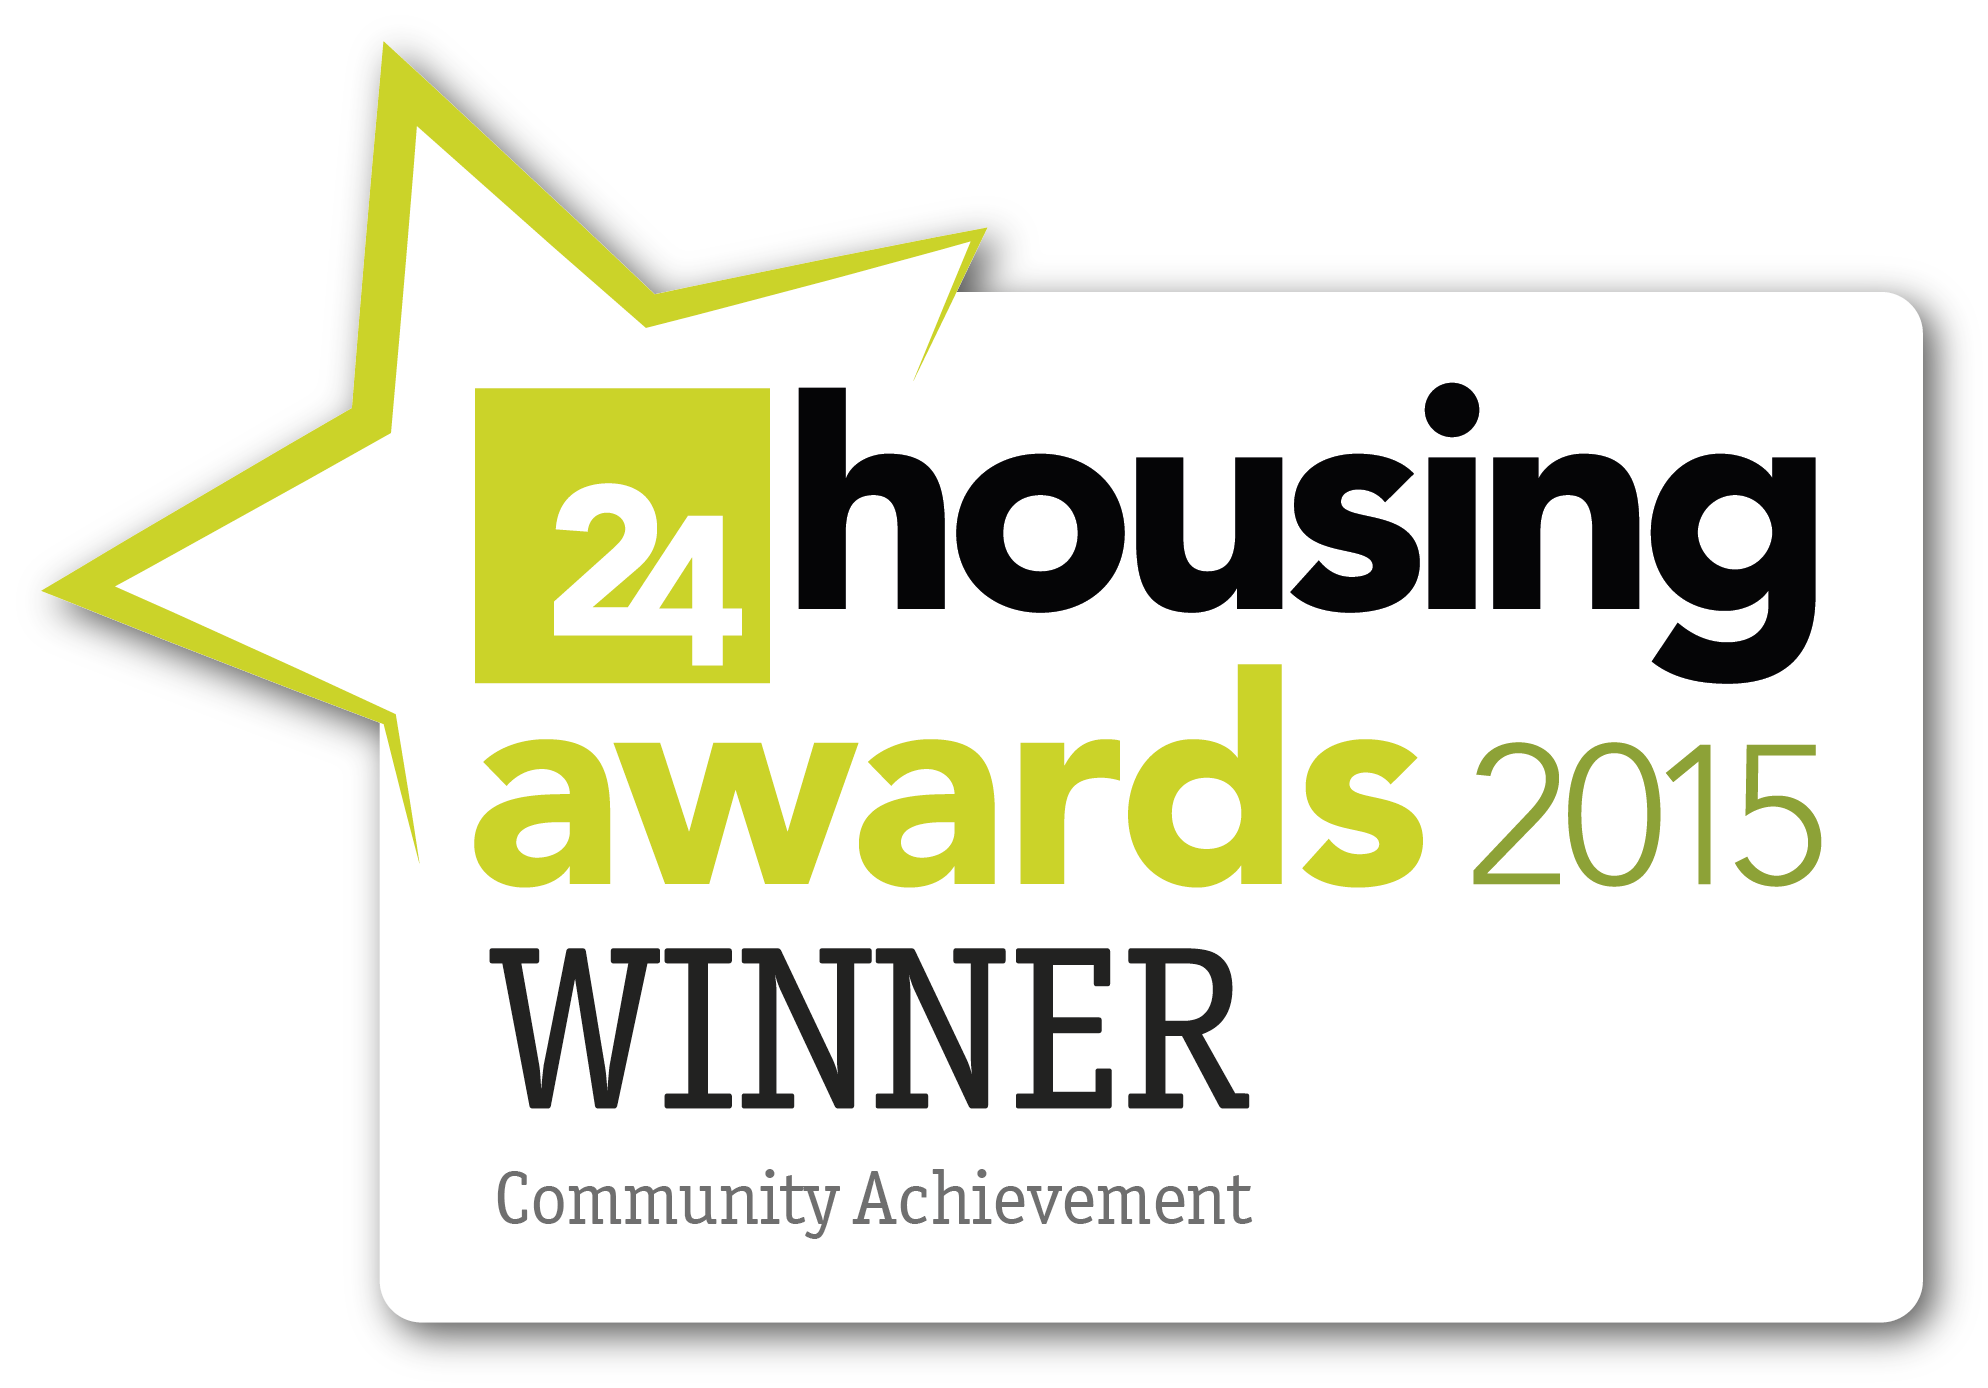 Phoenix Community Housing 24housing Awards 2015 winners